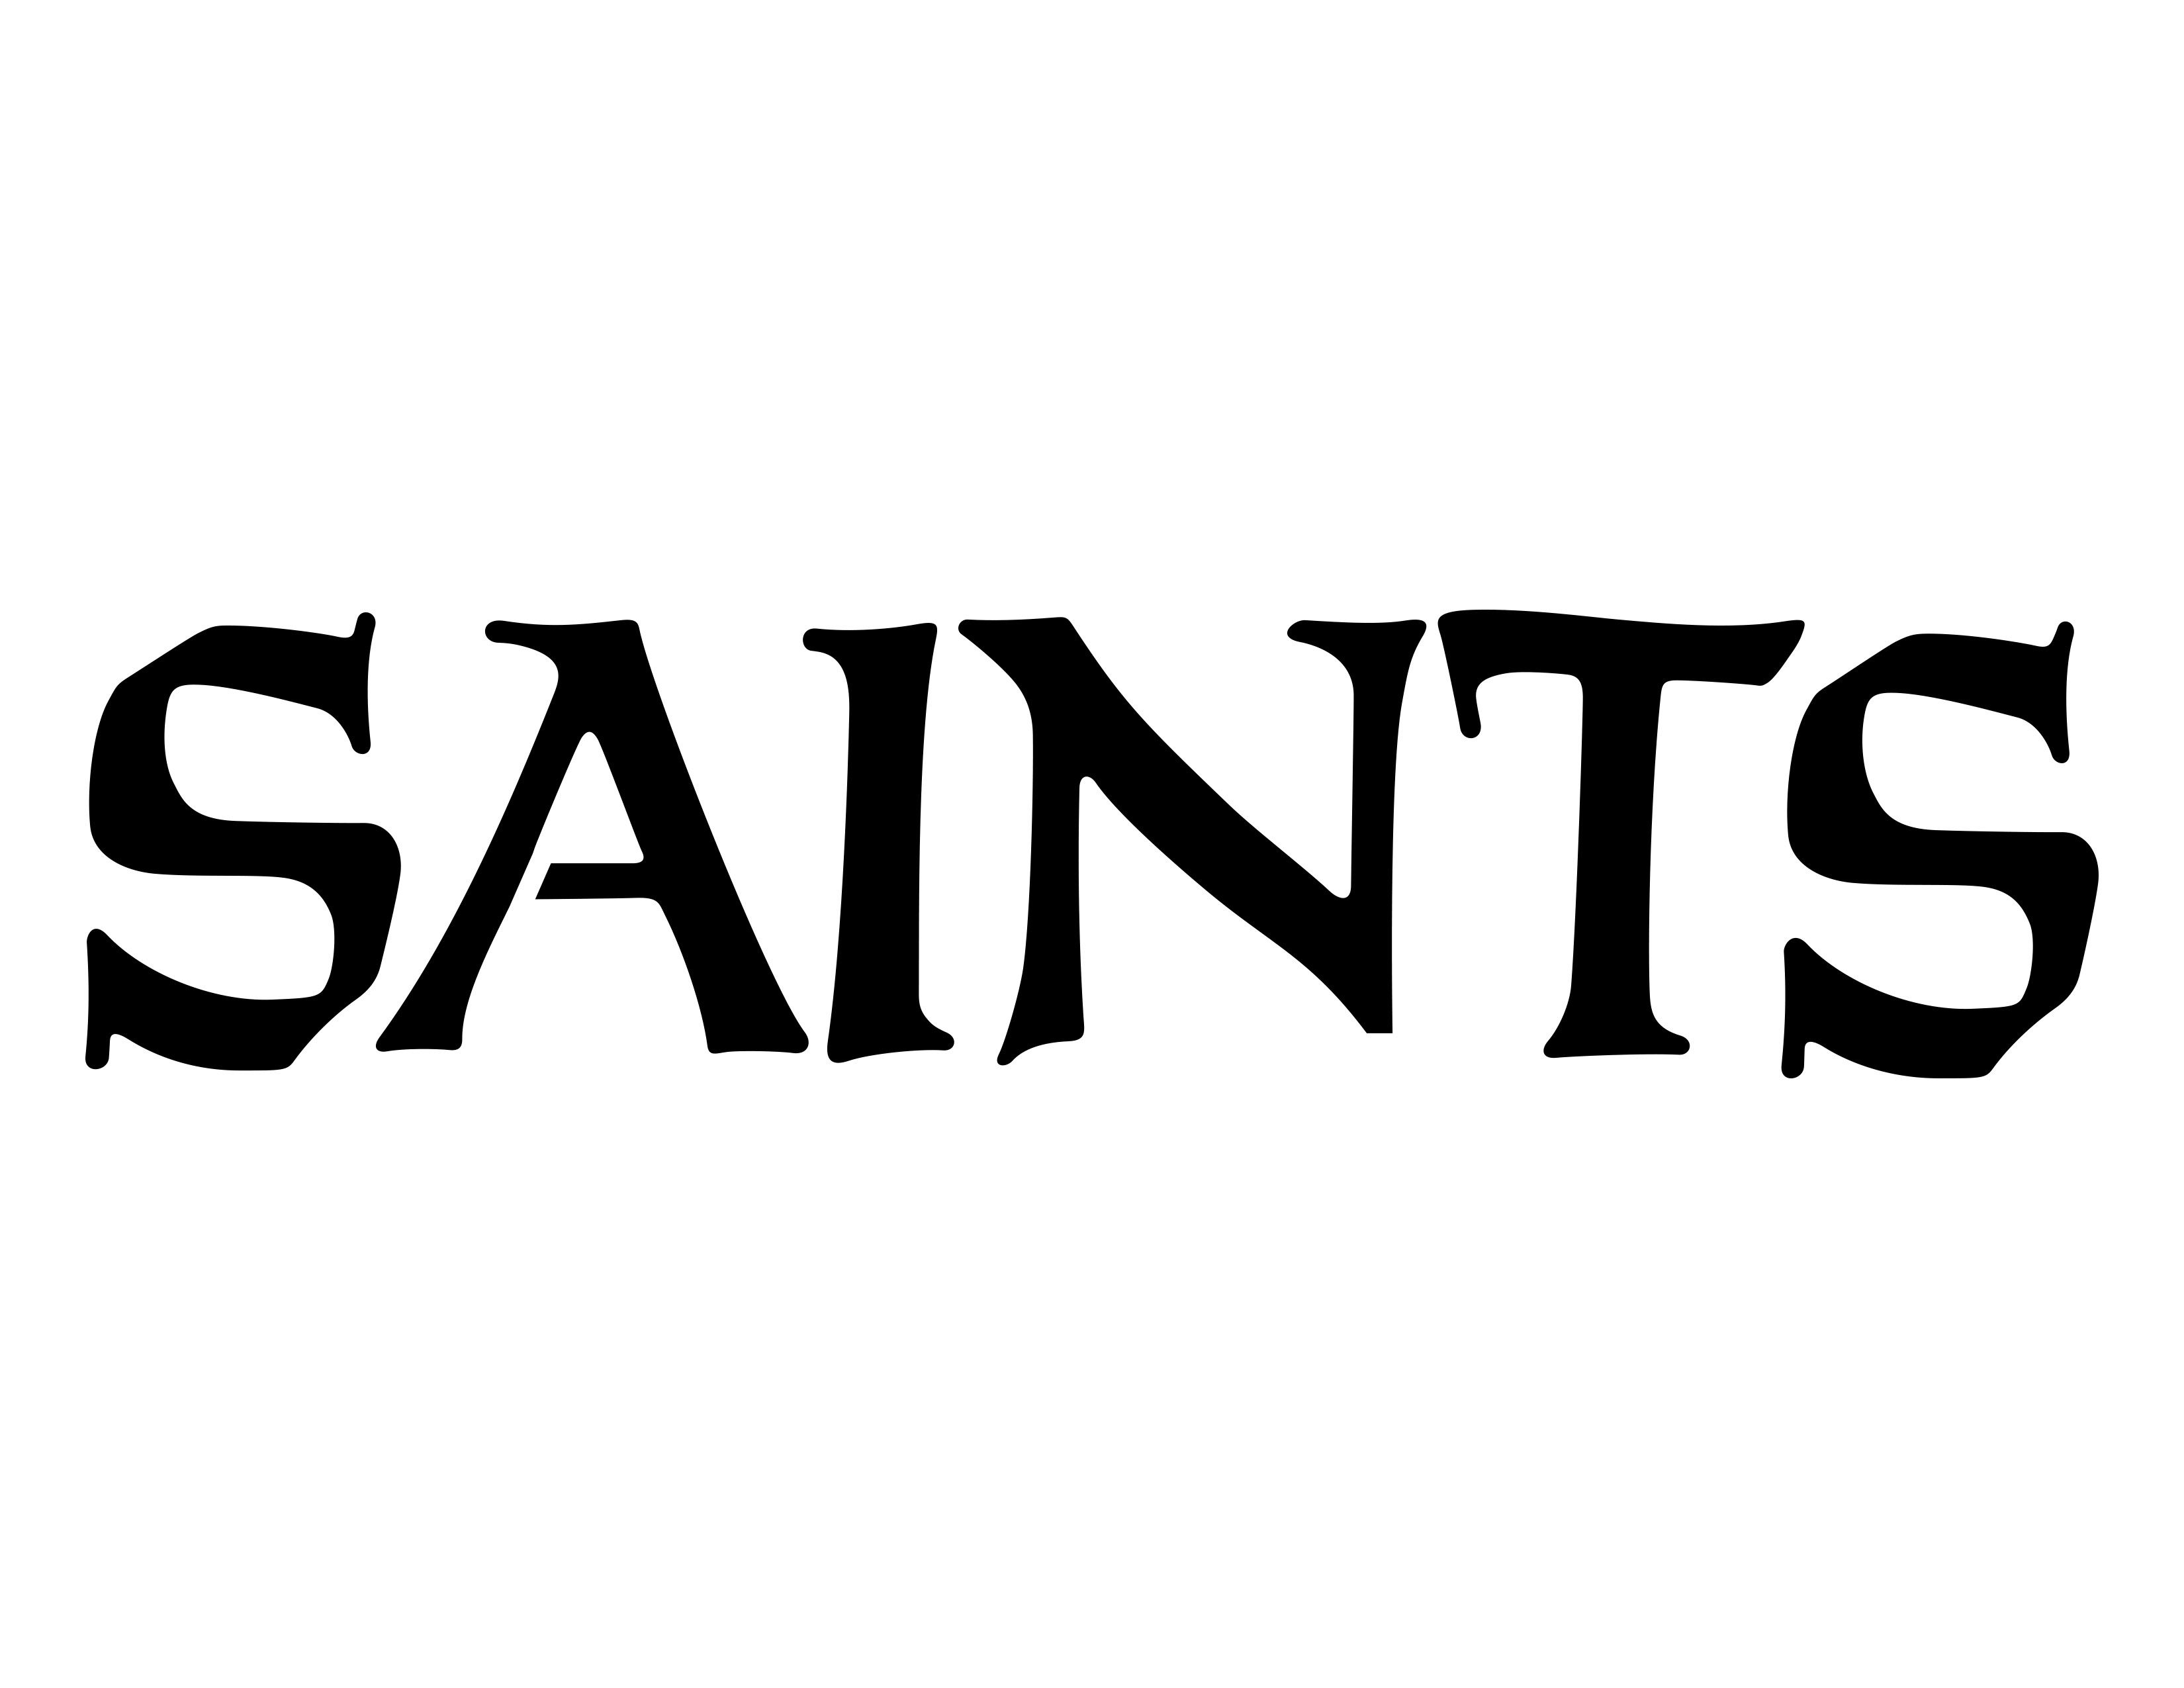 saints - photo #8